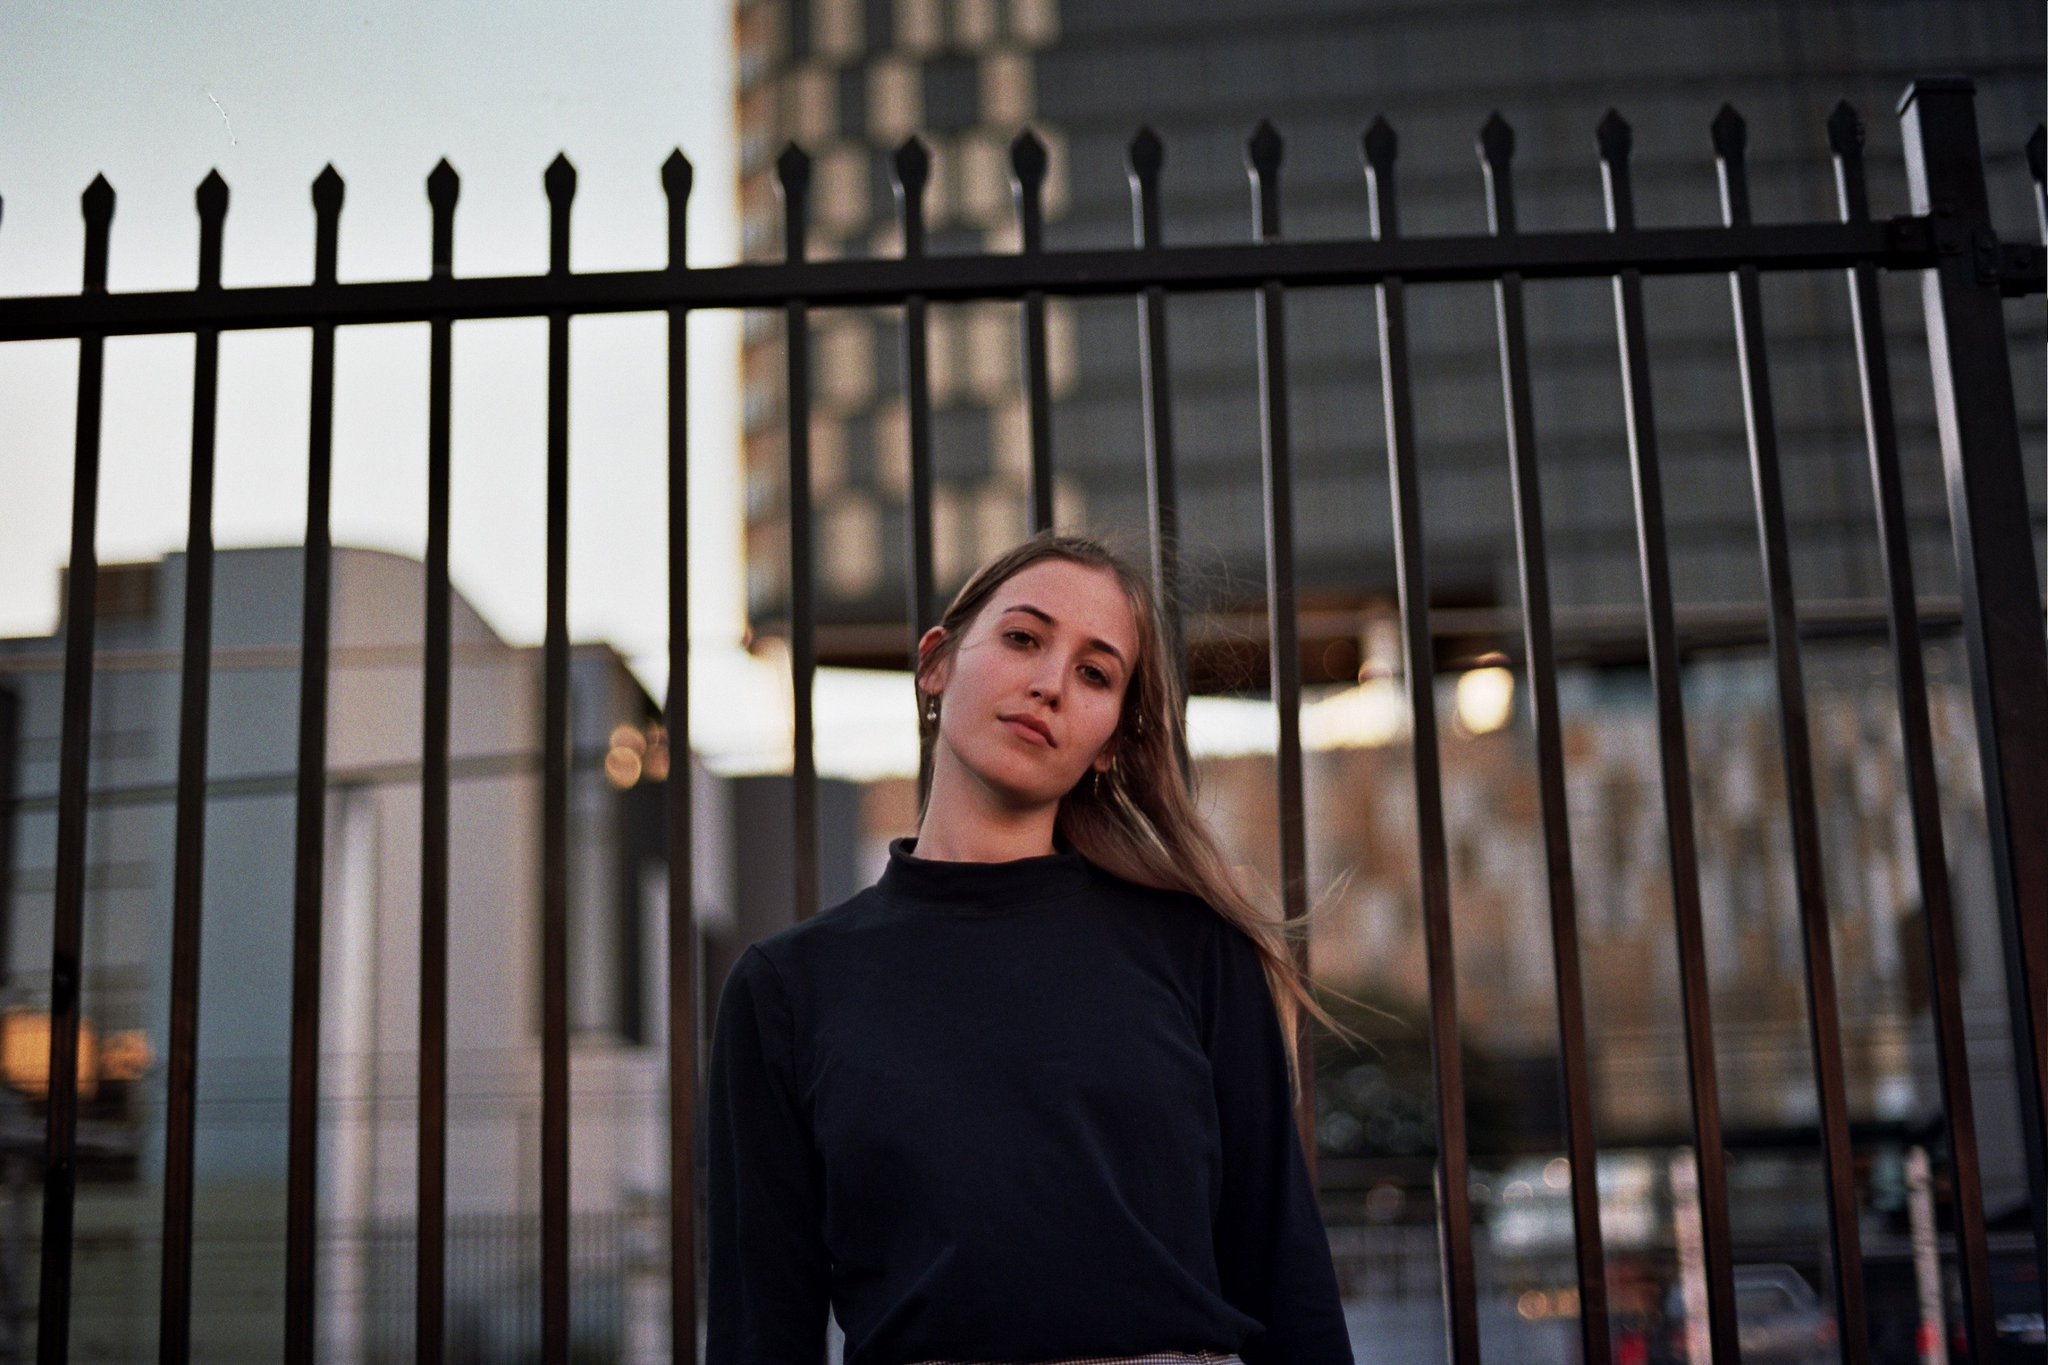 Hatchie's new song 'Sure' is a shoegaze-y pop earworm. https://t.co/rkGOYVylfS https://t.co/o3BWyoPKAC